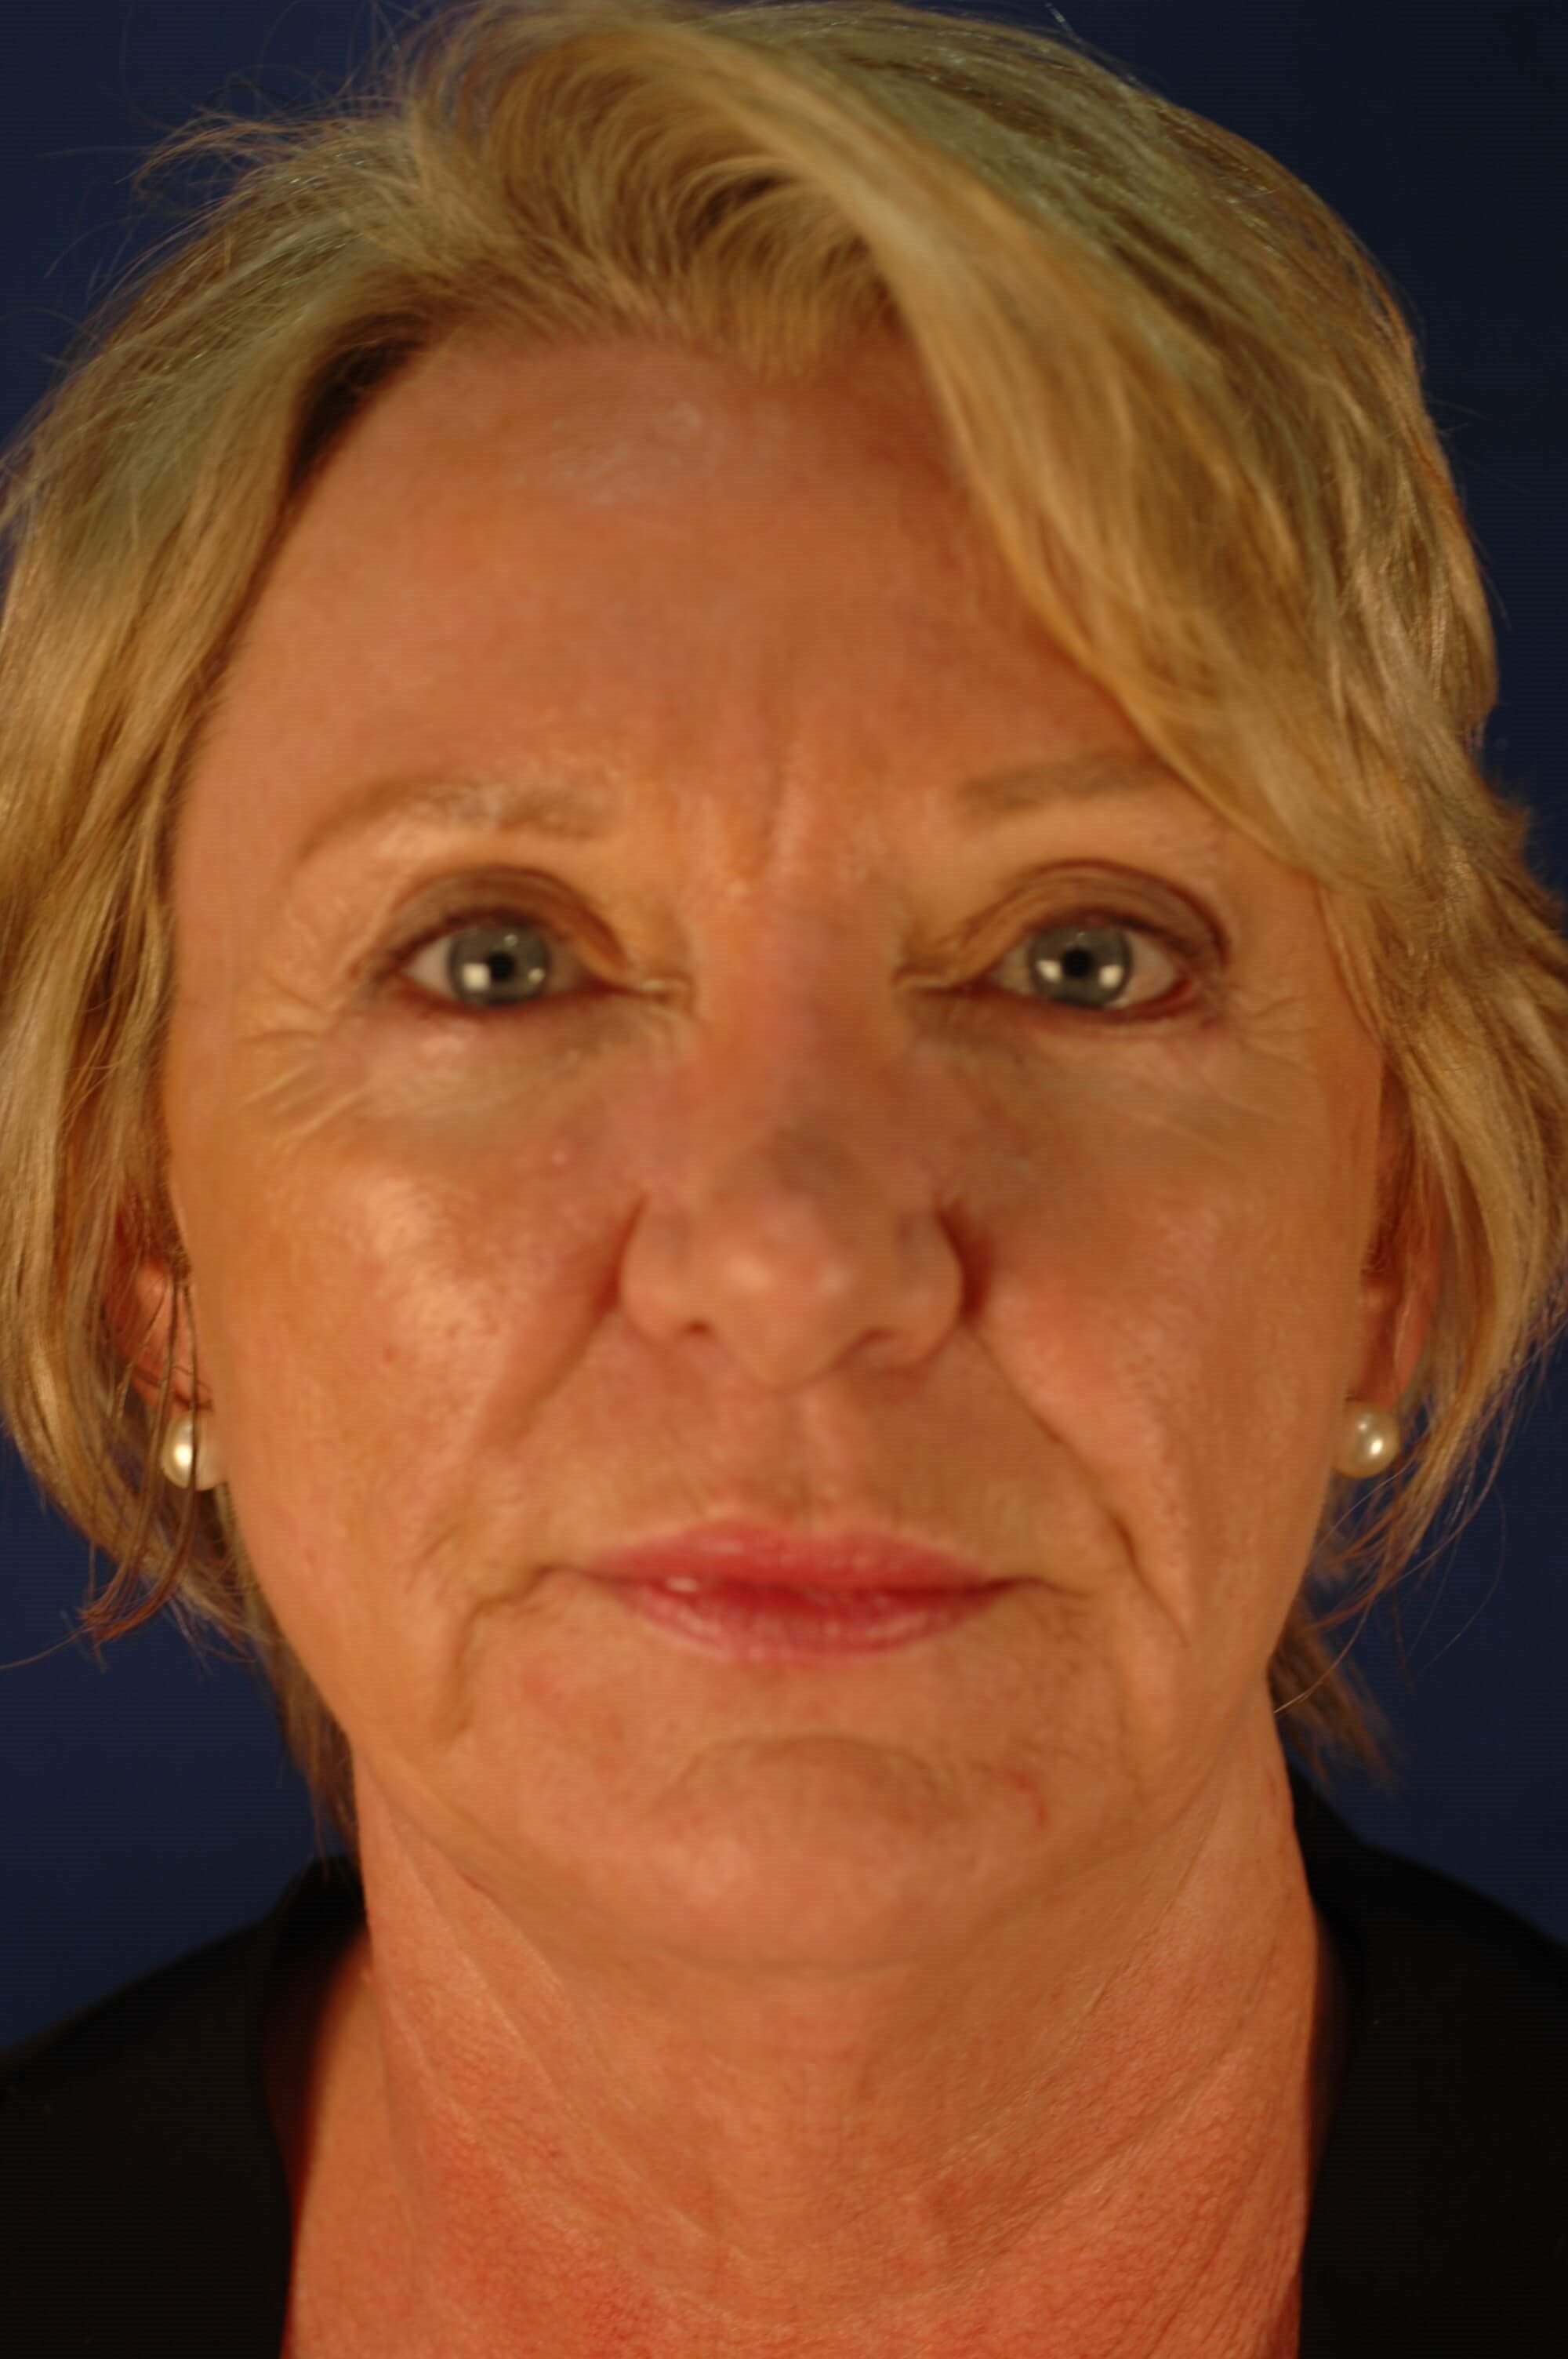 Dr. Bunkis Facial Rejuvenation After Front View